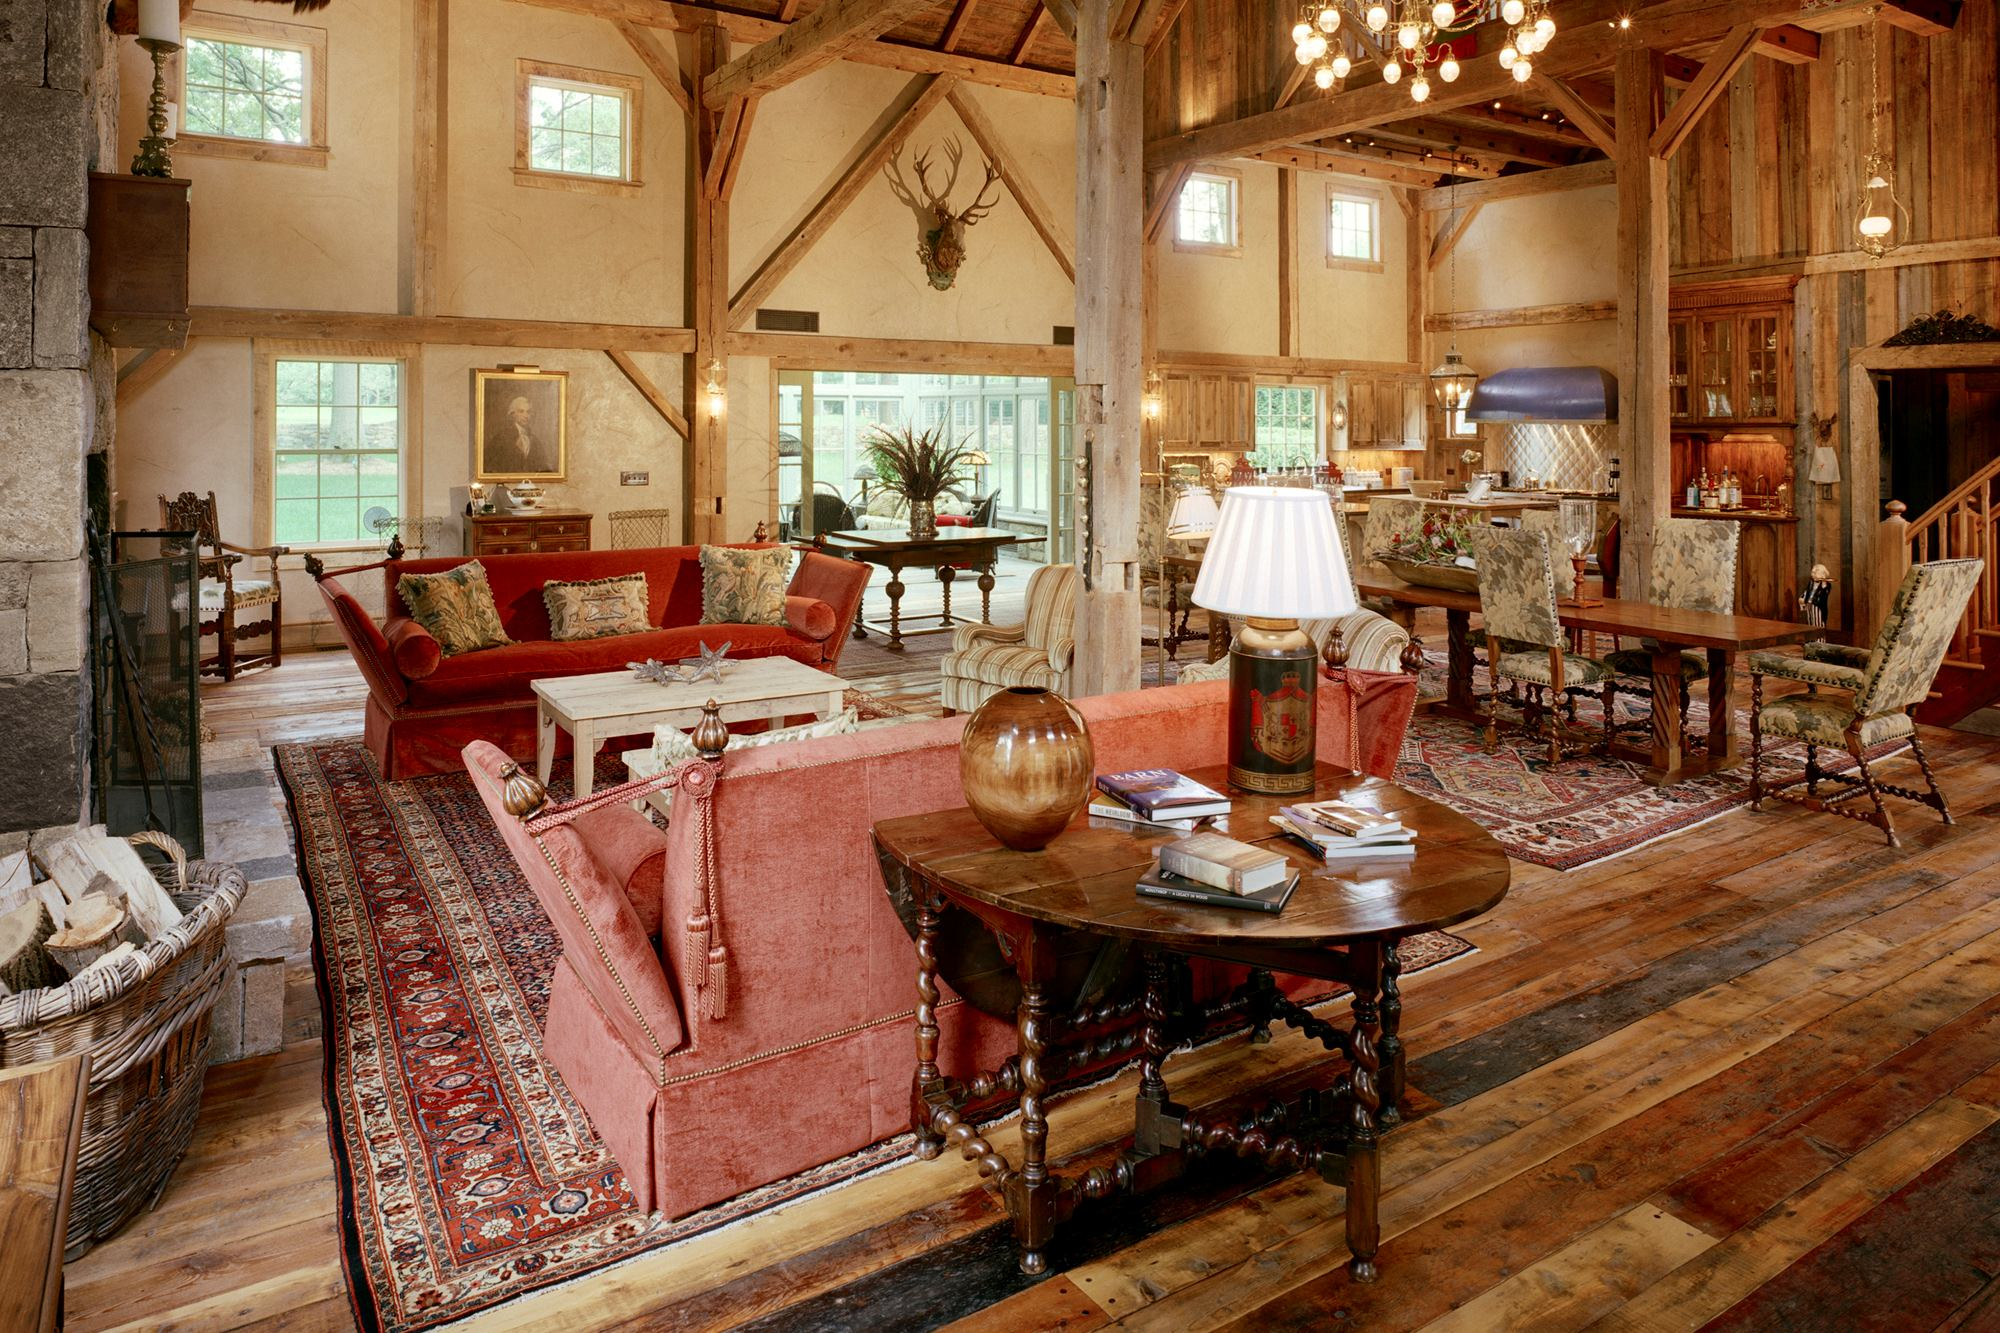 Converted barn kitchen builder magazine design award for Converting a pole barn into a house